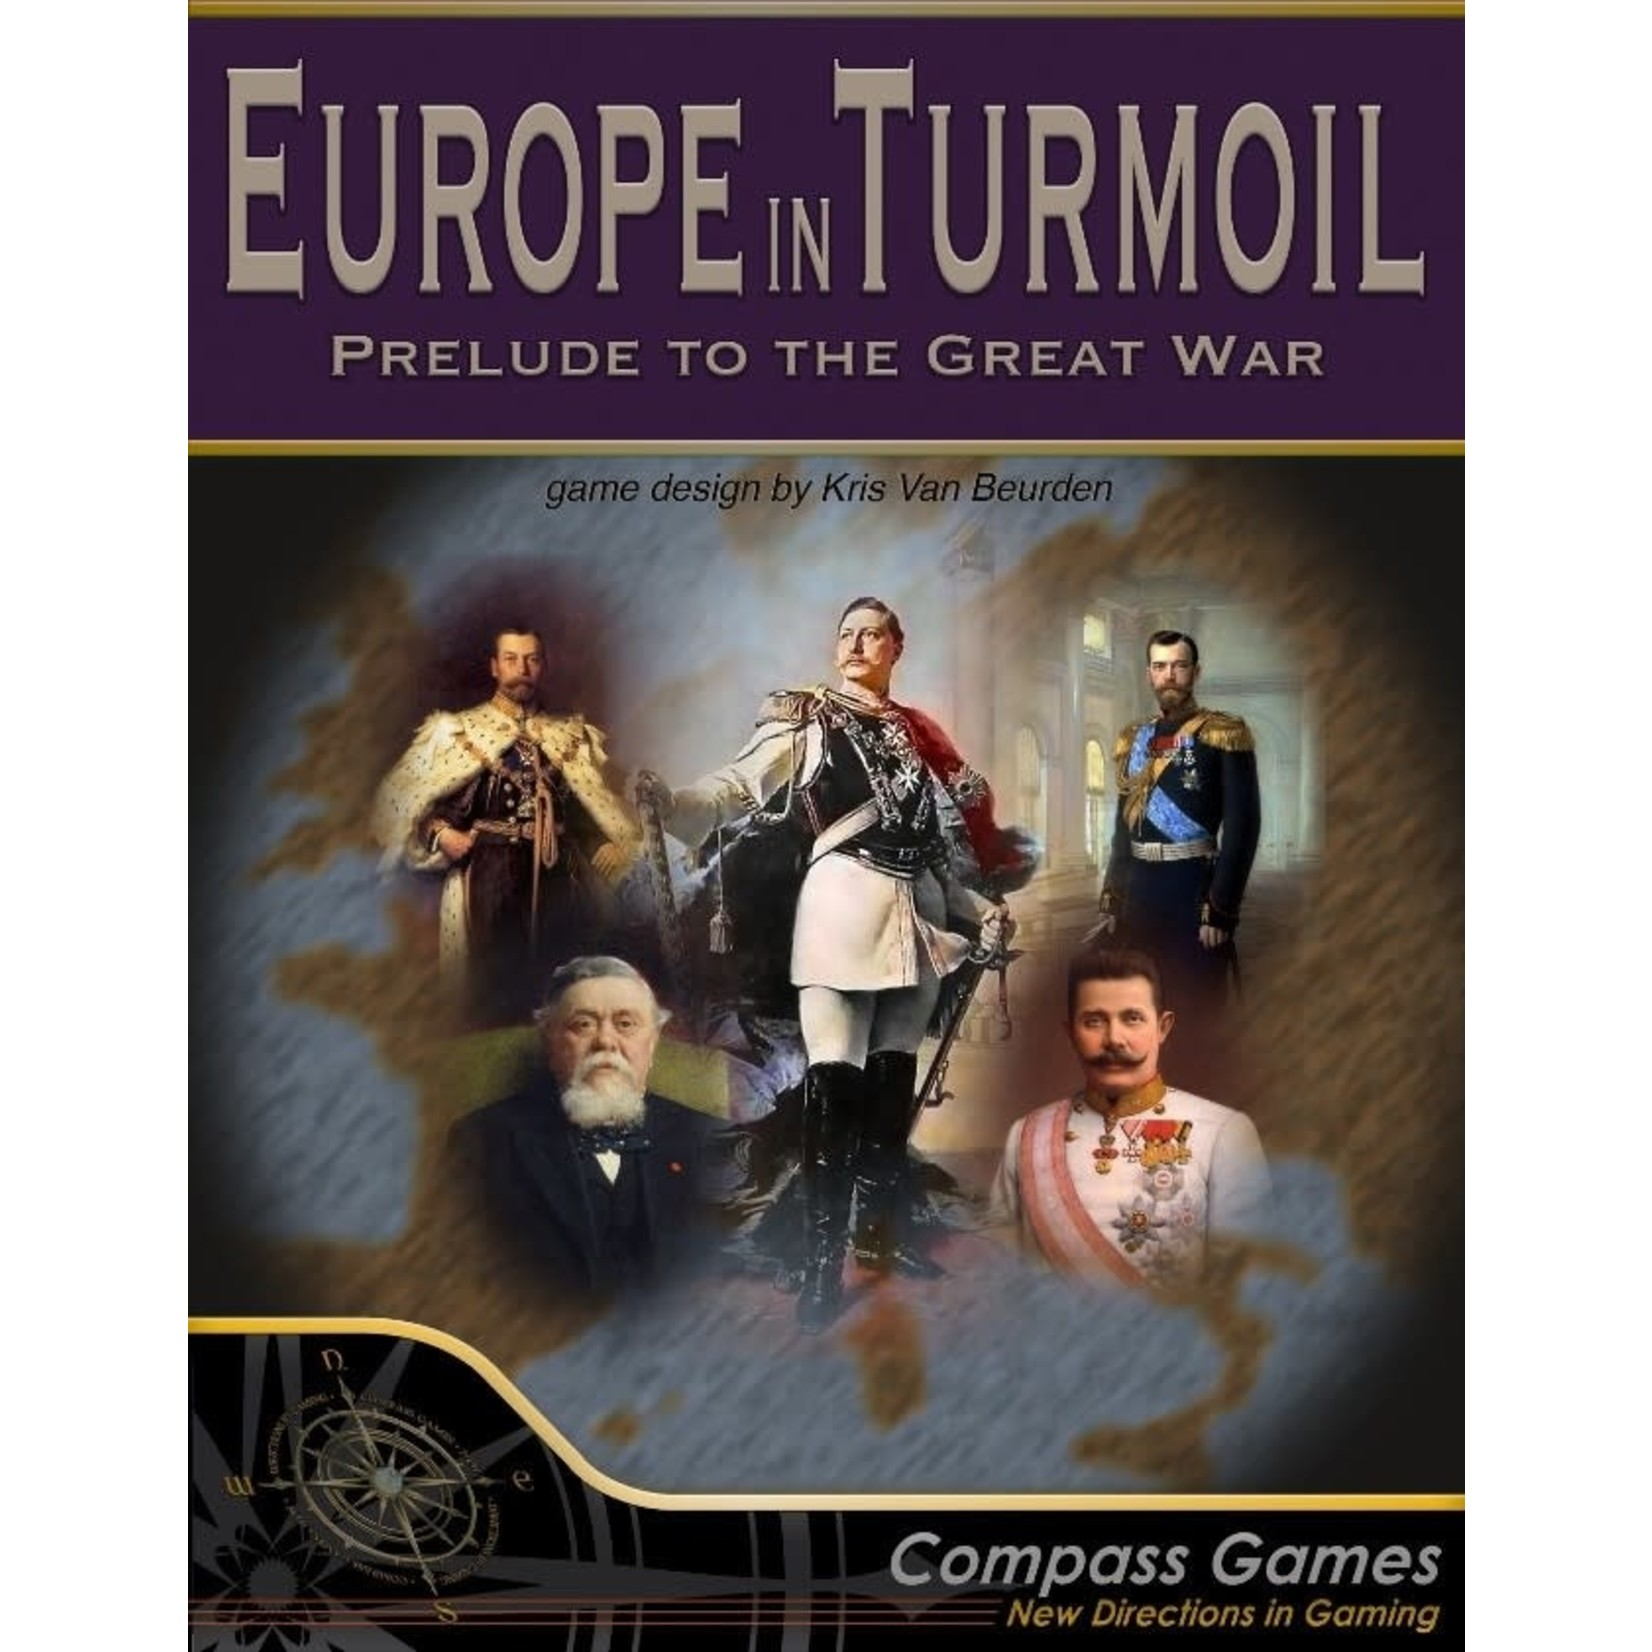 Compass Games Europe in Turmoil: Prelude to the Great War